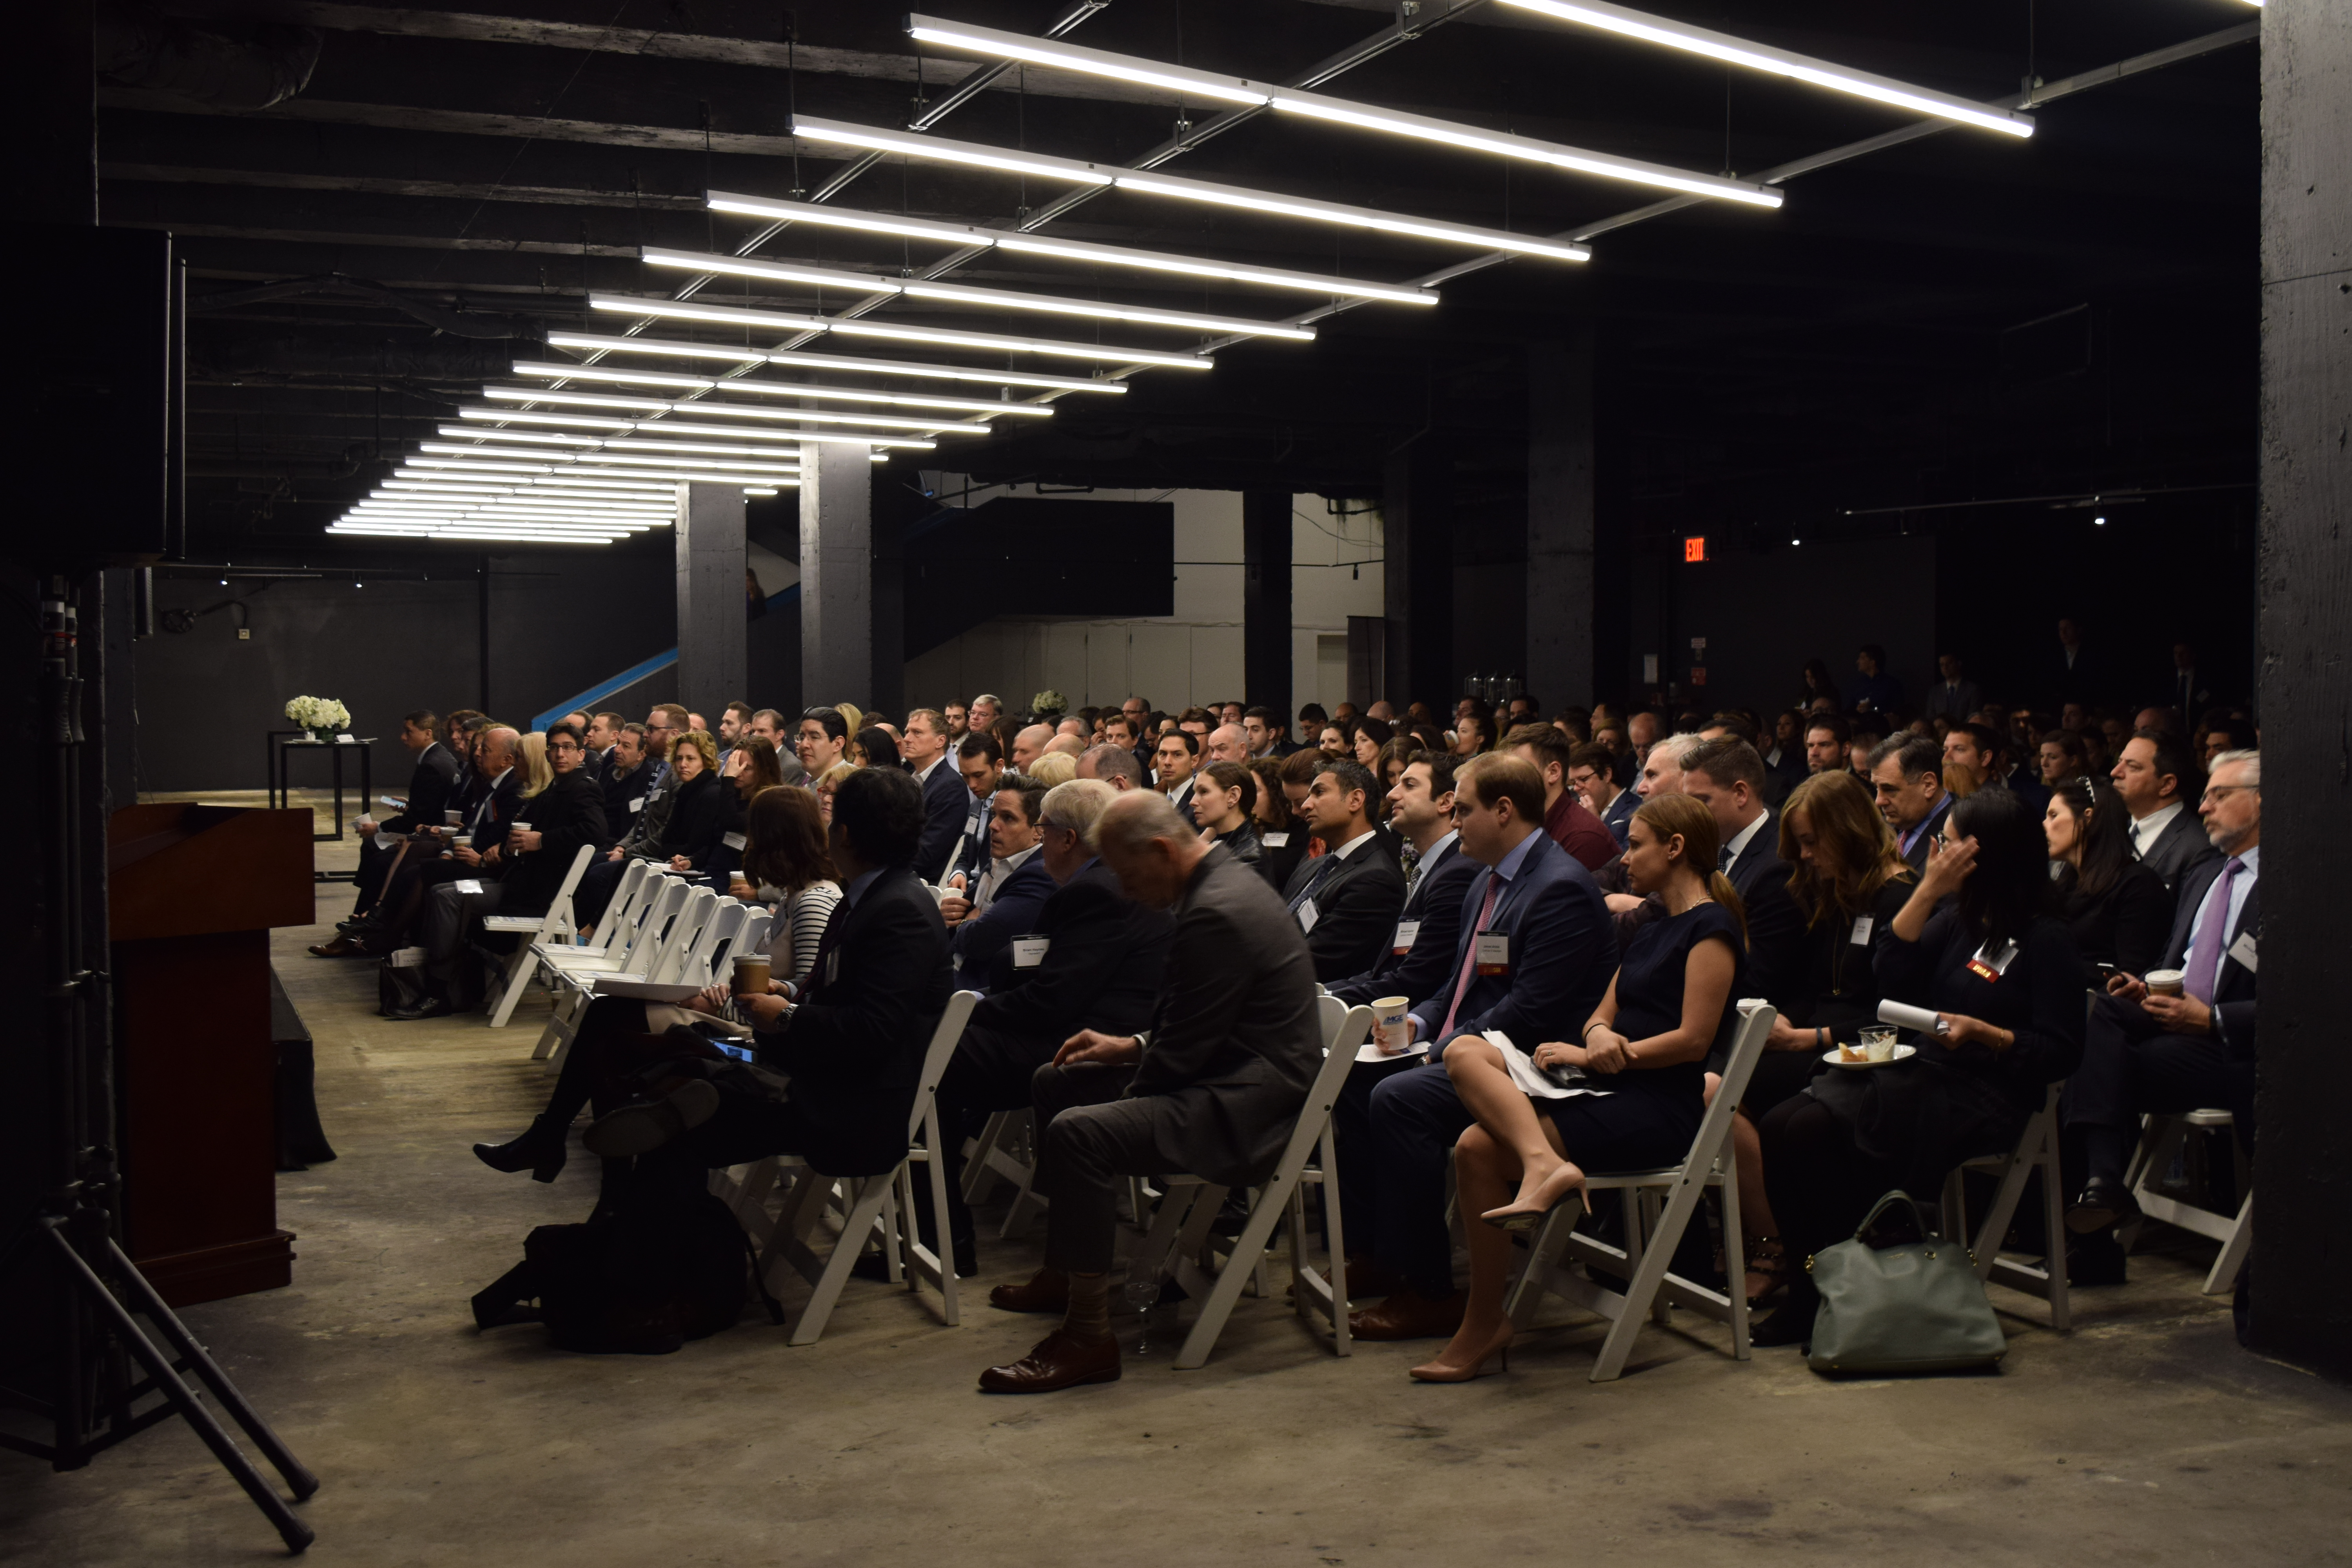 A packed house for yesterday's panel on the Future of Retail at 1221 Avenue of the Americas.